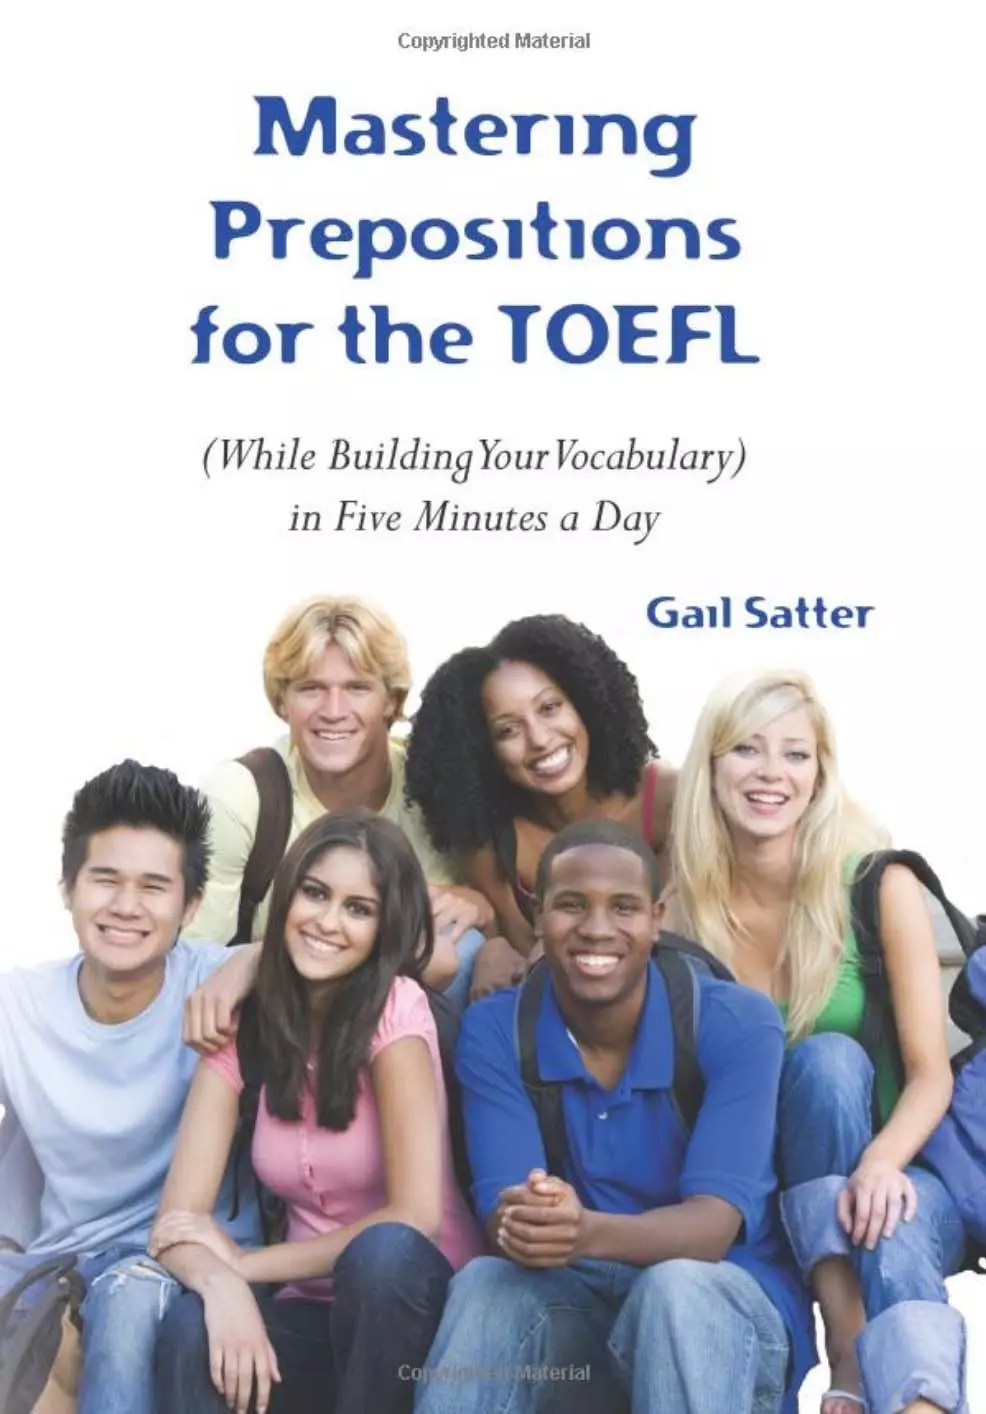 Mastering Prepositions for the TOEFL in Five Minutes a Day Workbook by Gail Satter